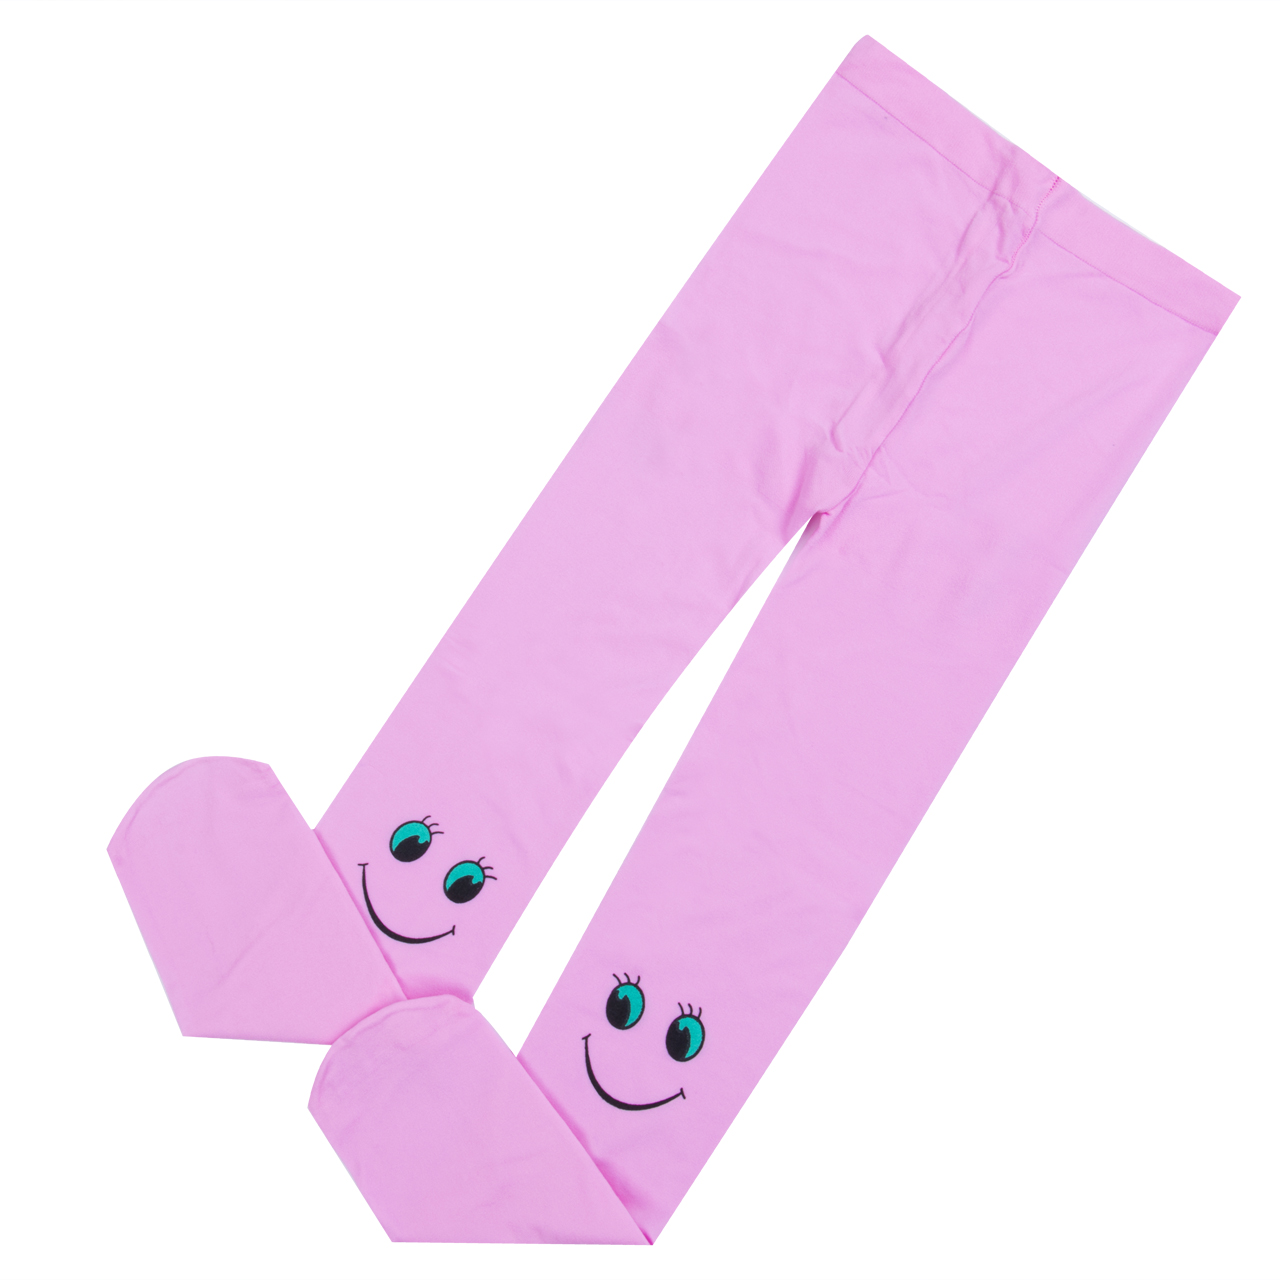 5Colors Novelty Ideal Tights Girls Kids Pantyhose Soft Velvet Ballet Tights Toddler Clothes Accessories